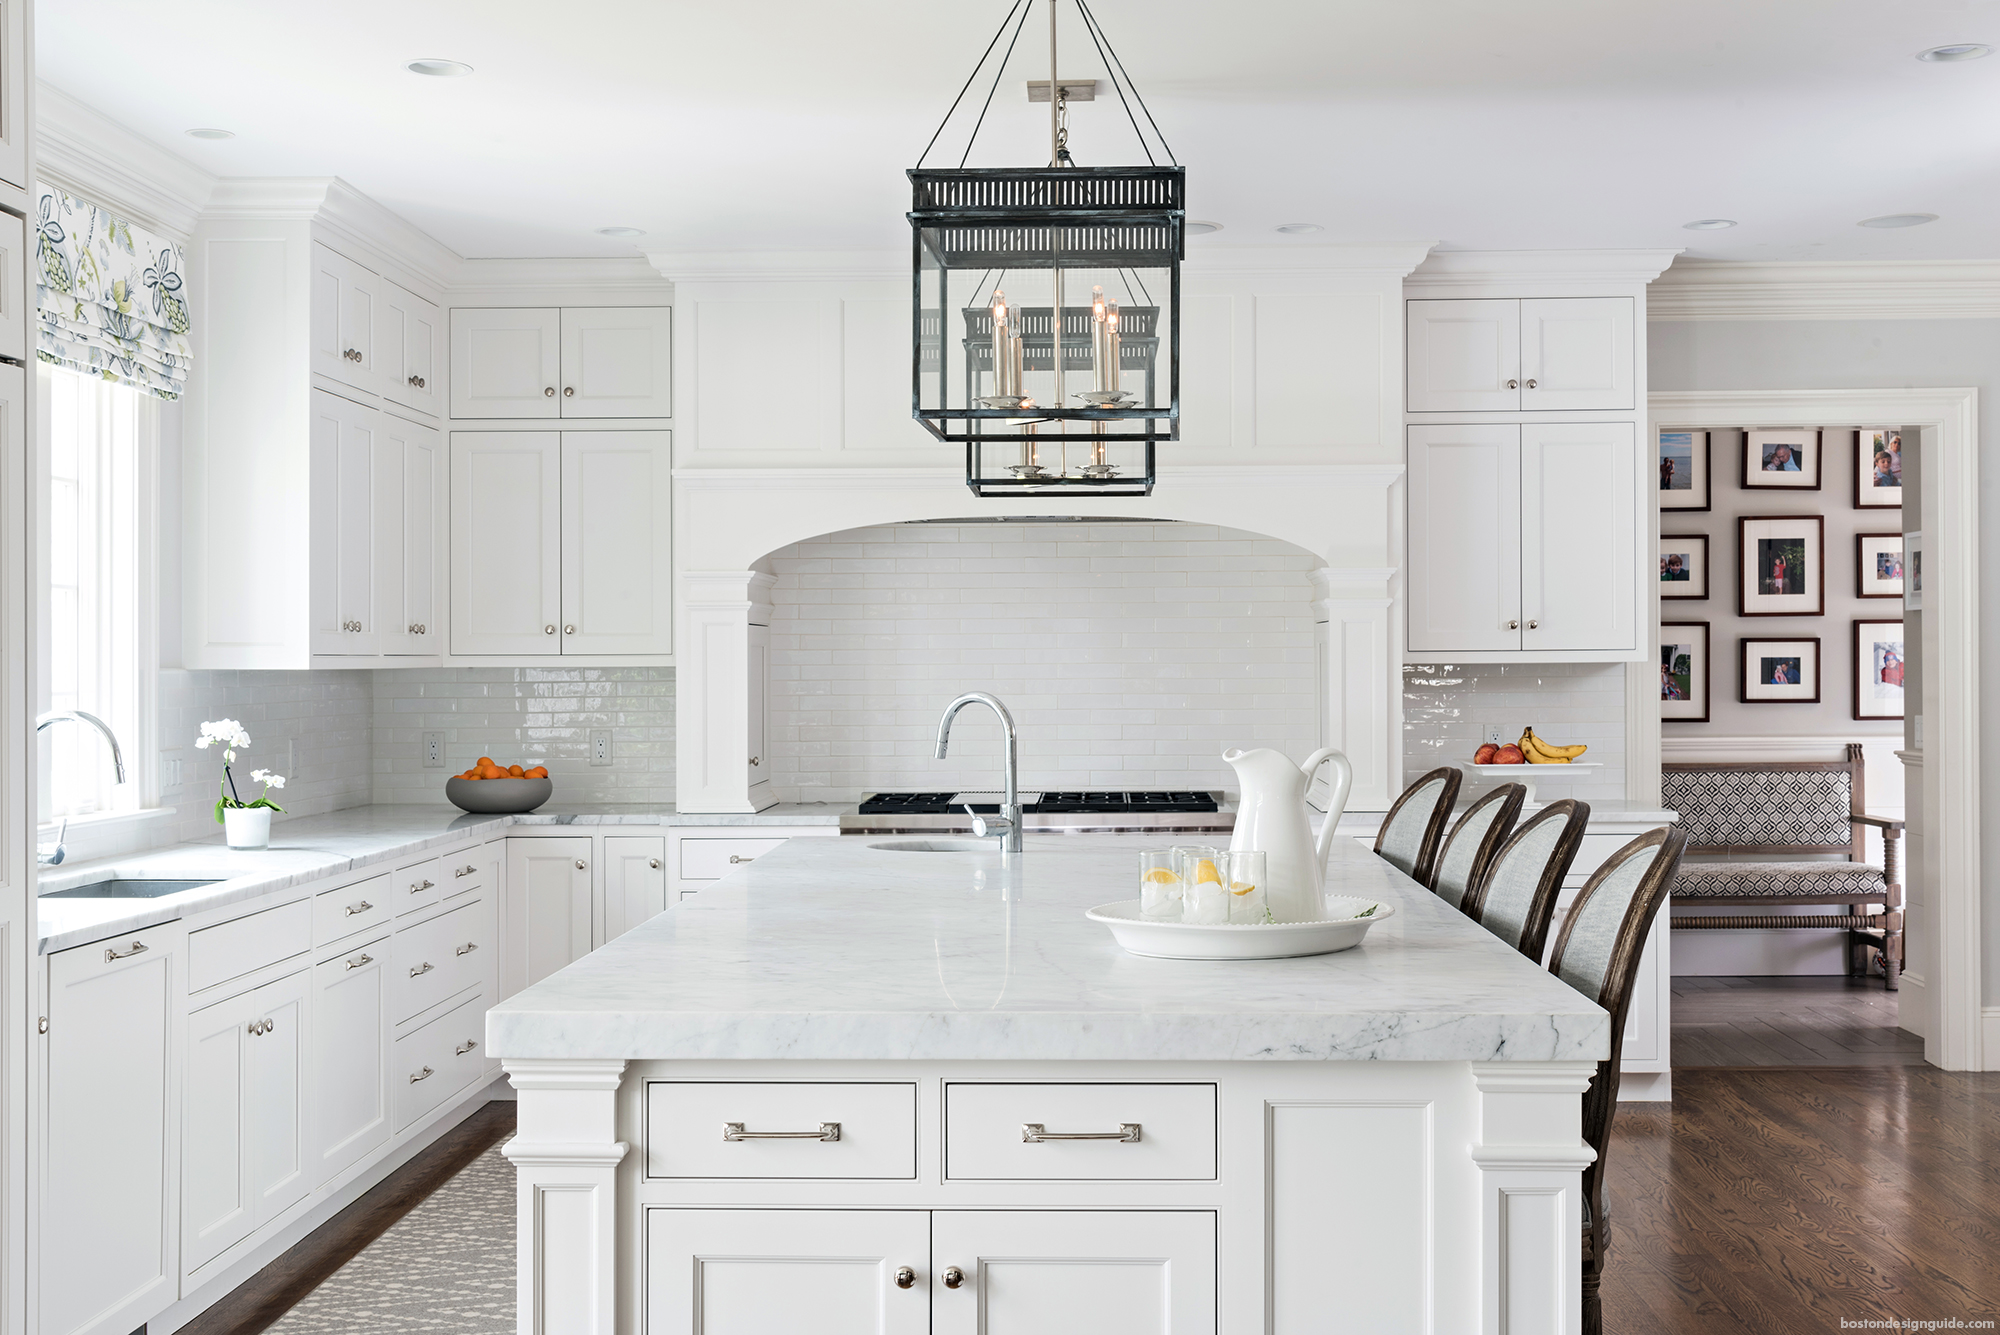 Faneuil Kitchen Cabinet. View Gallery